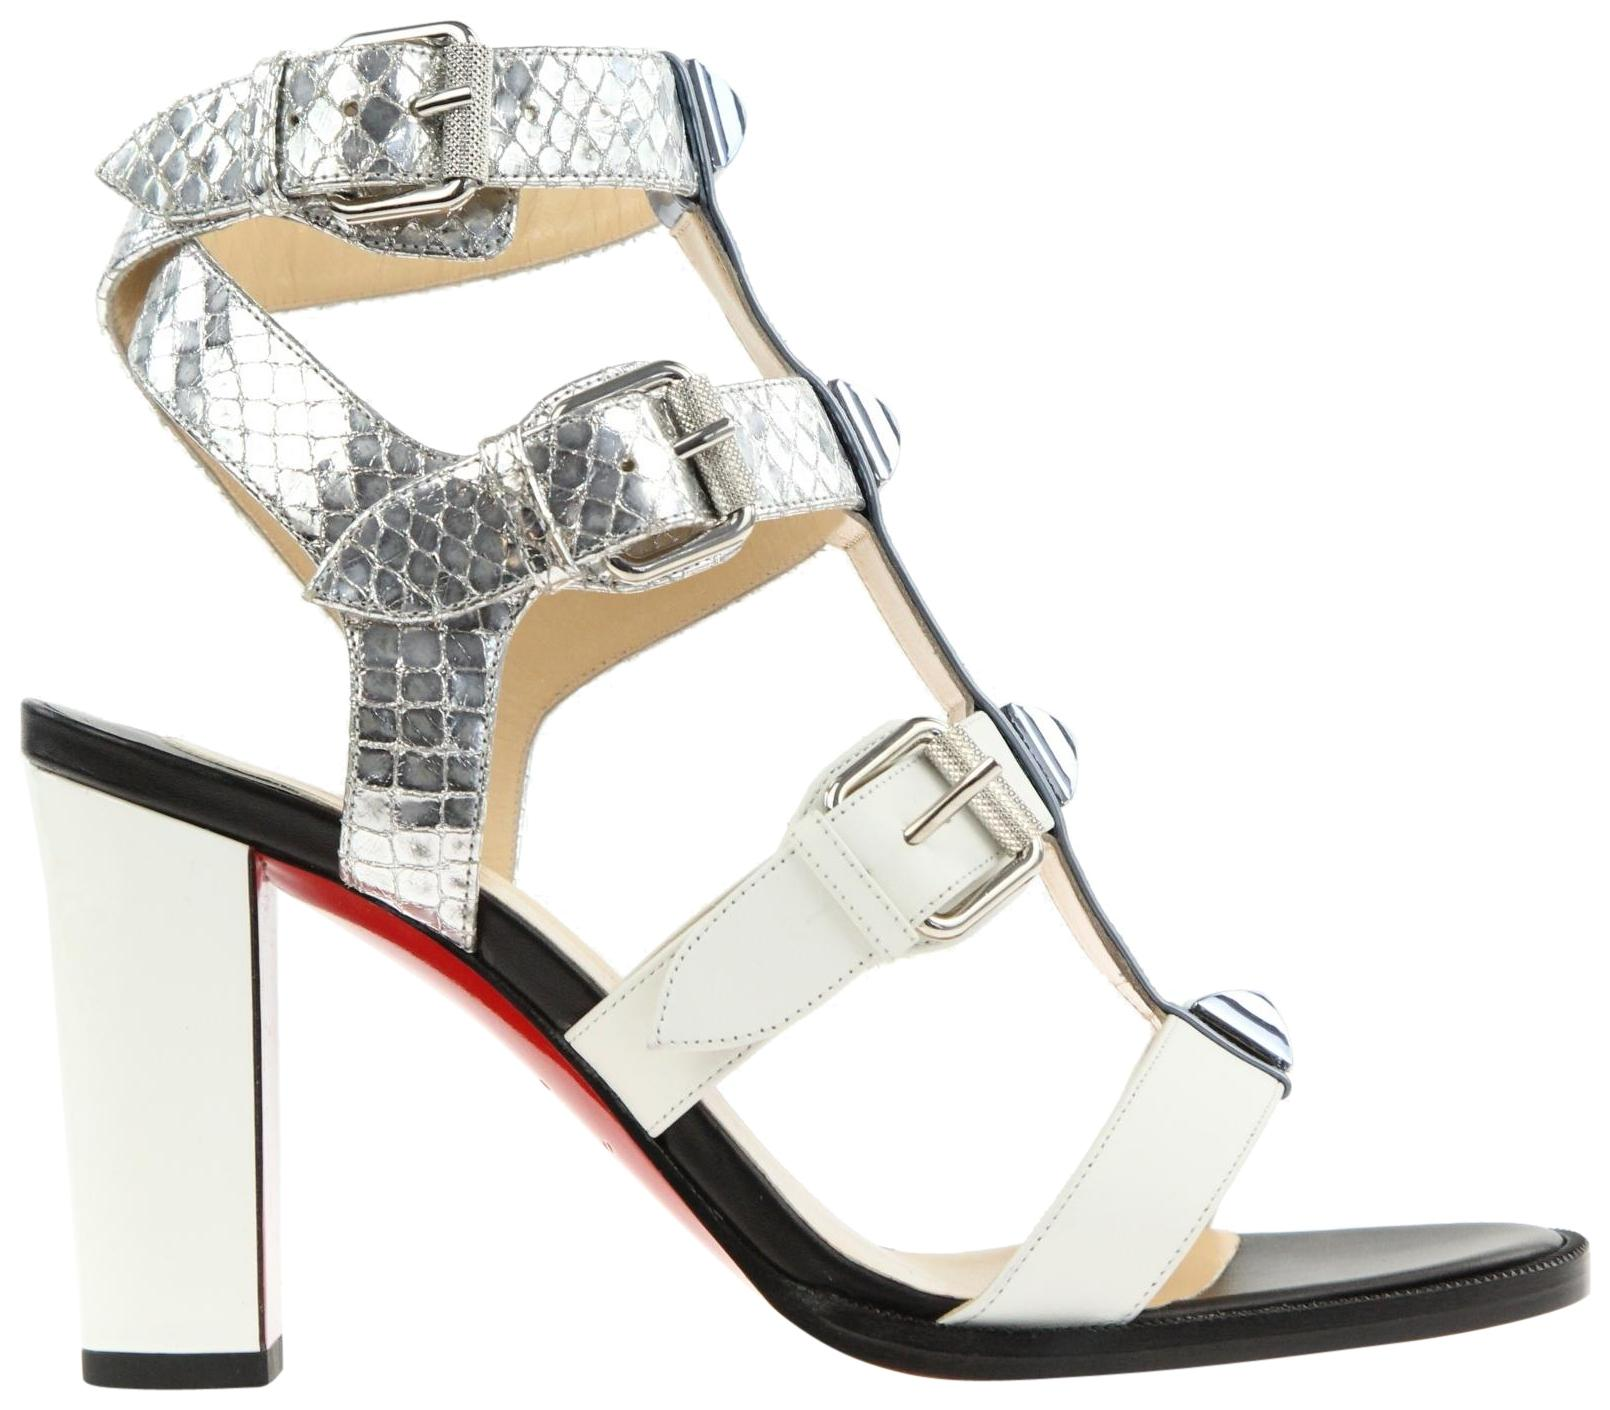 Christian Louboutin Multicolor Rocknbuckle 85 Met Pat/Calf/Lame Sir/Pat Sandals Size 6.5) EU 36.5 (Approx. US 6.5) Size Regular (M, B) 1409a3